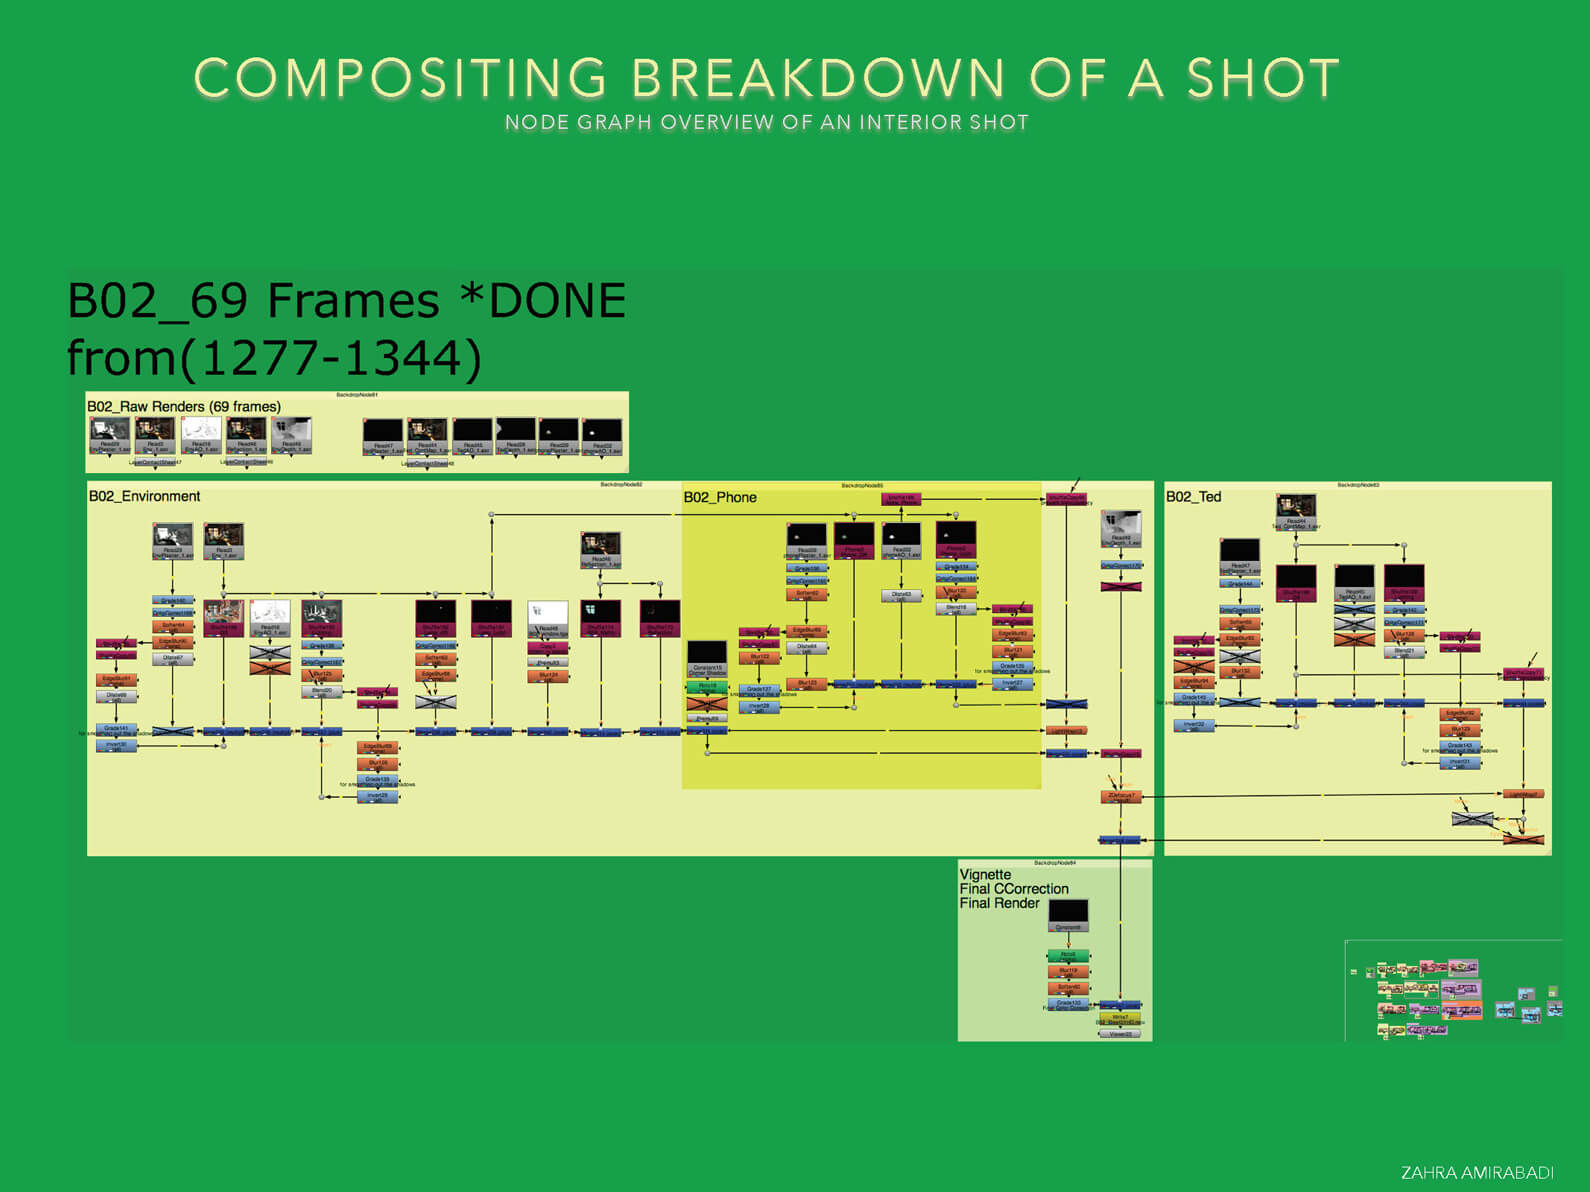 Compositing breakdown of shots depicting the timeline of animated sequences in Orientation Center for the Unseen